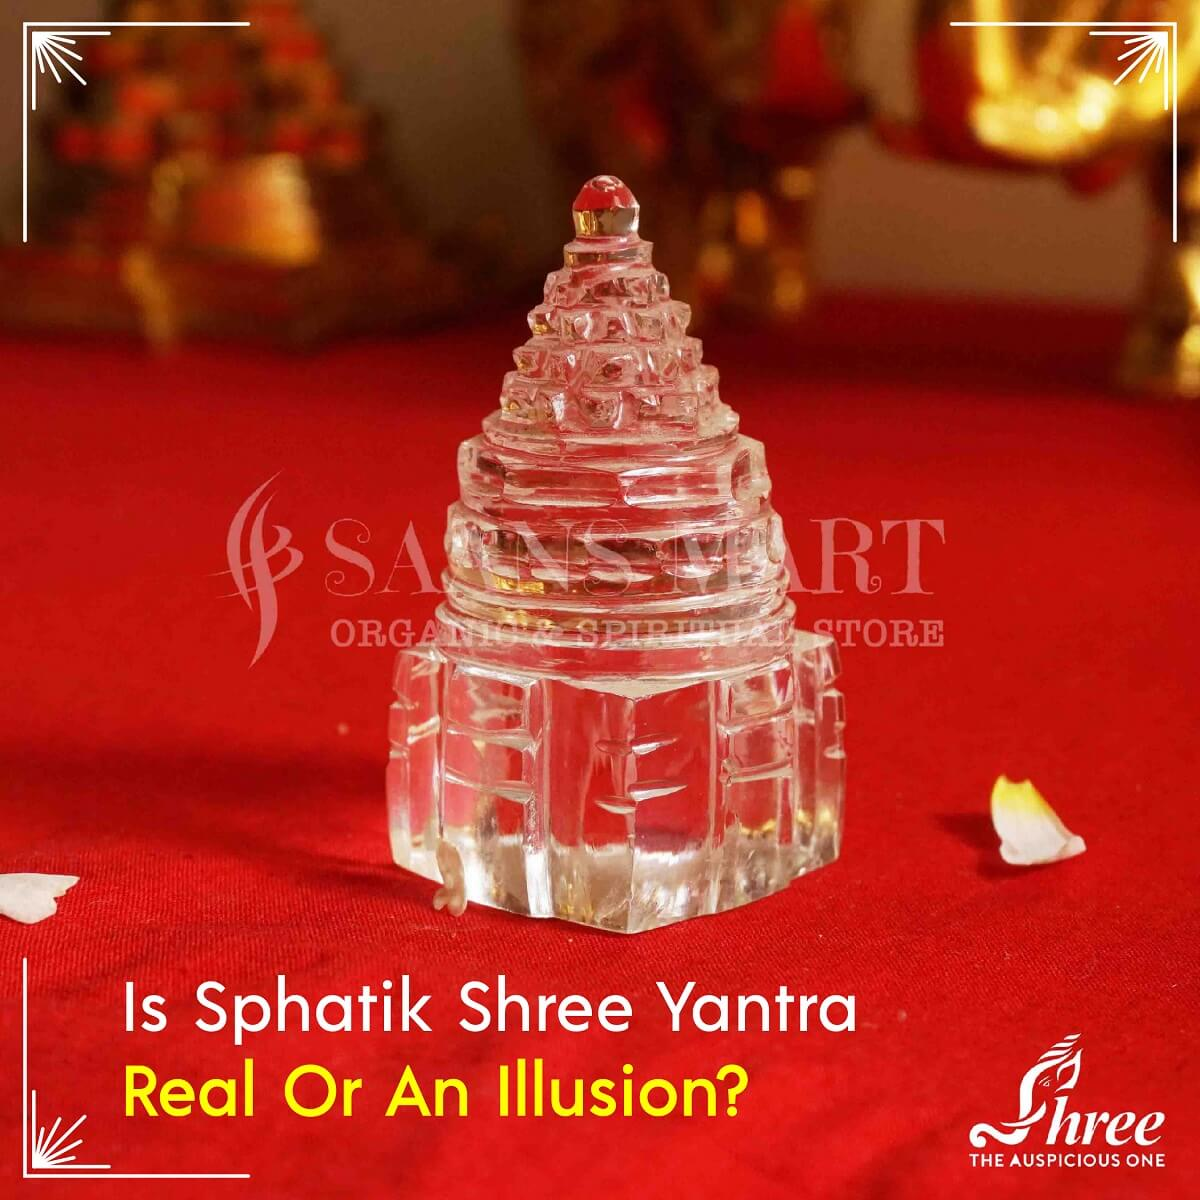 Is Sphatik Shree Yantra Real or an illusion?